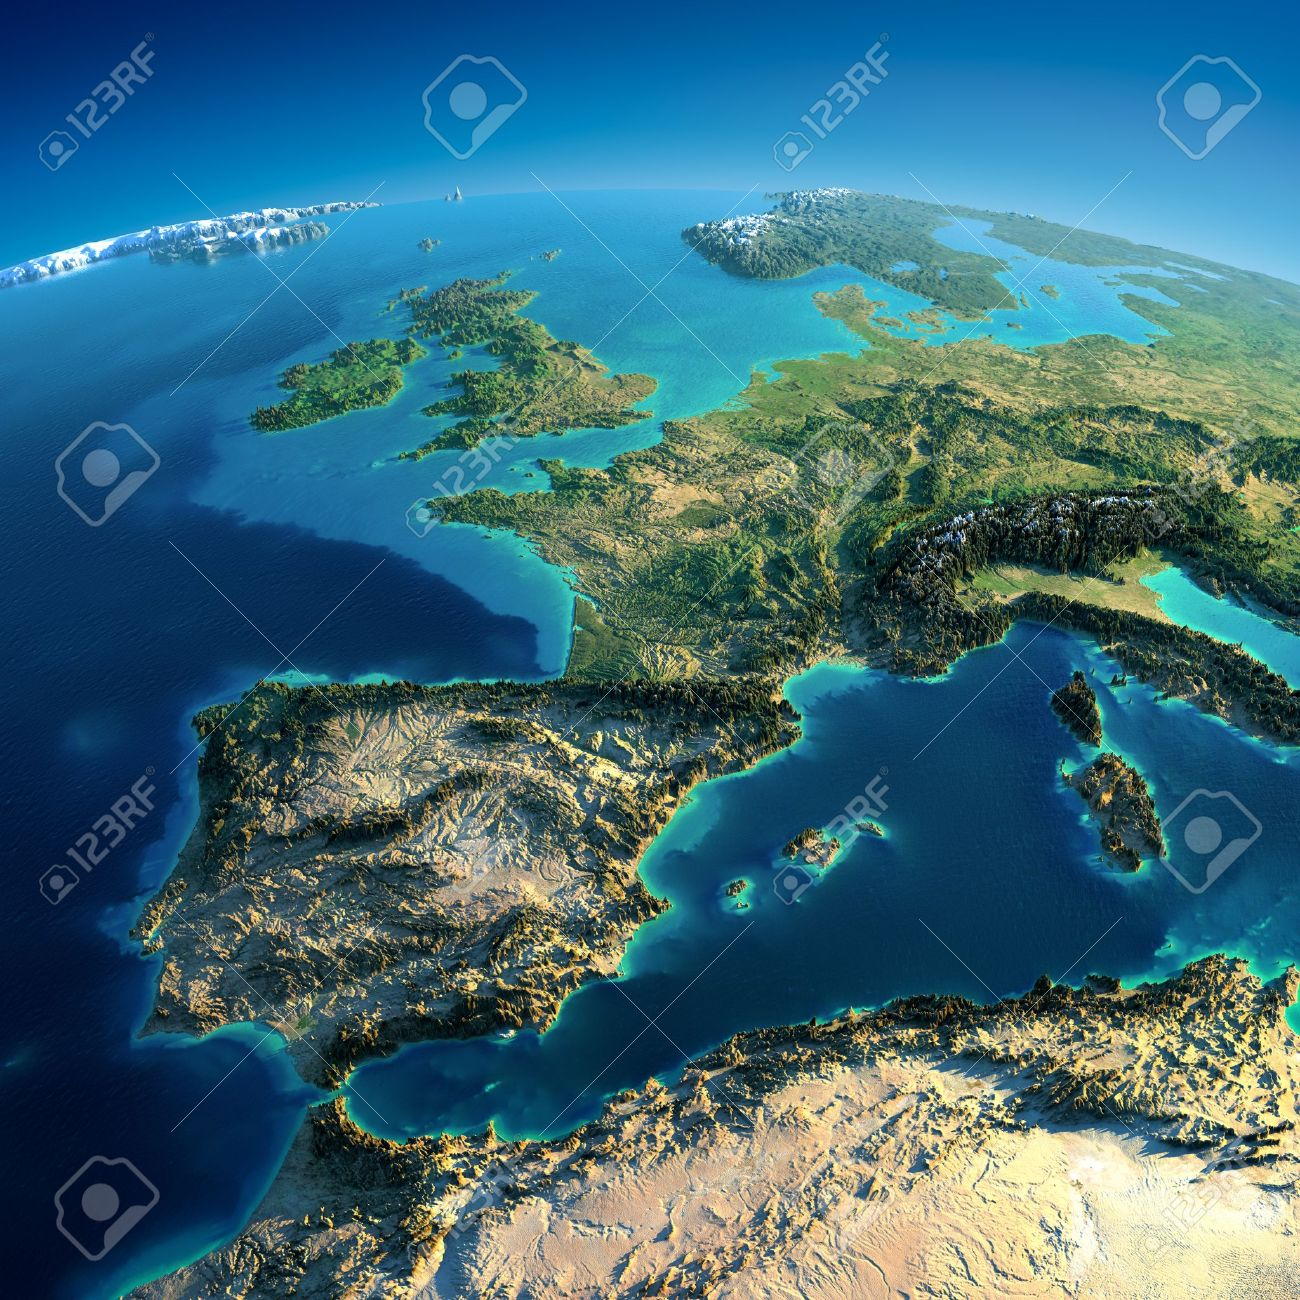 Highly detailed planet Earth in the morning Exaggerated precise relief lit morning sun Part of Europe, the Mediterranean Sea - 19449656